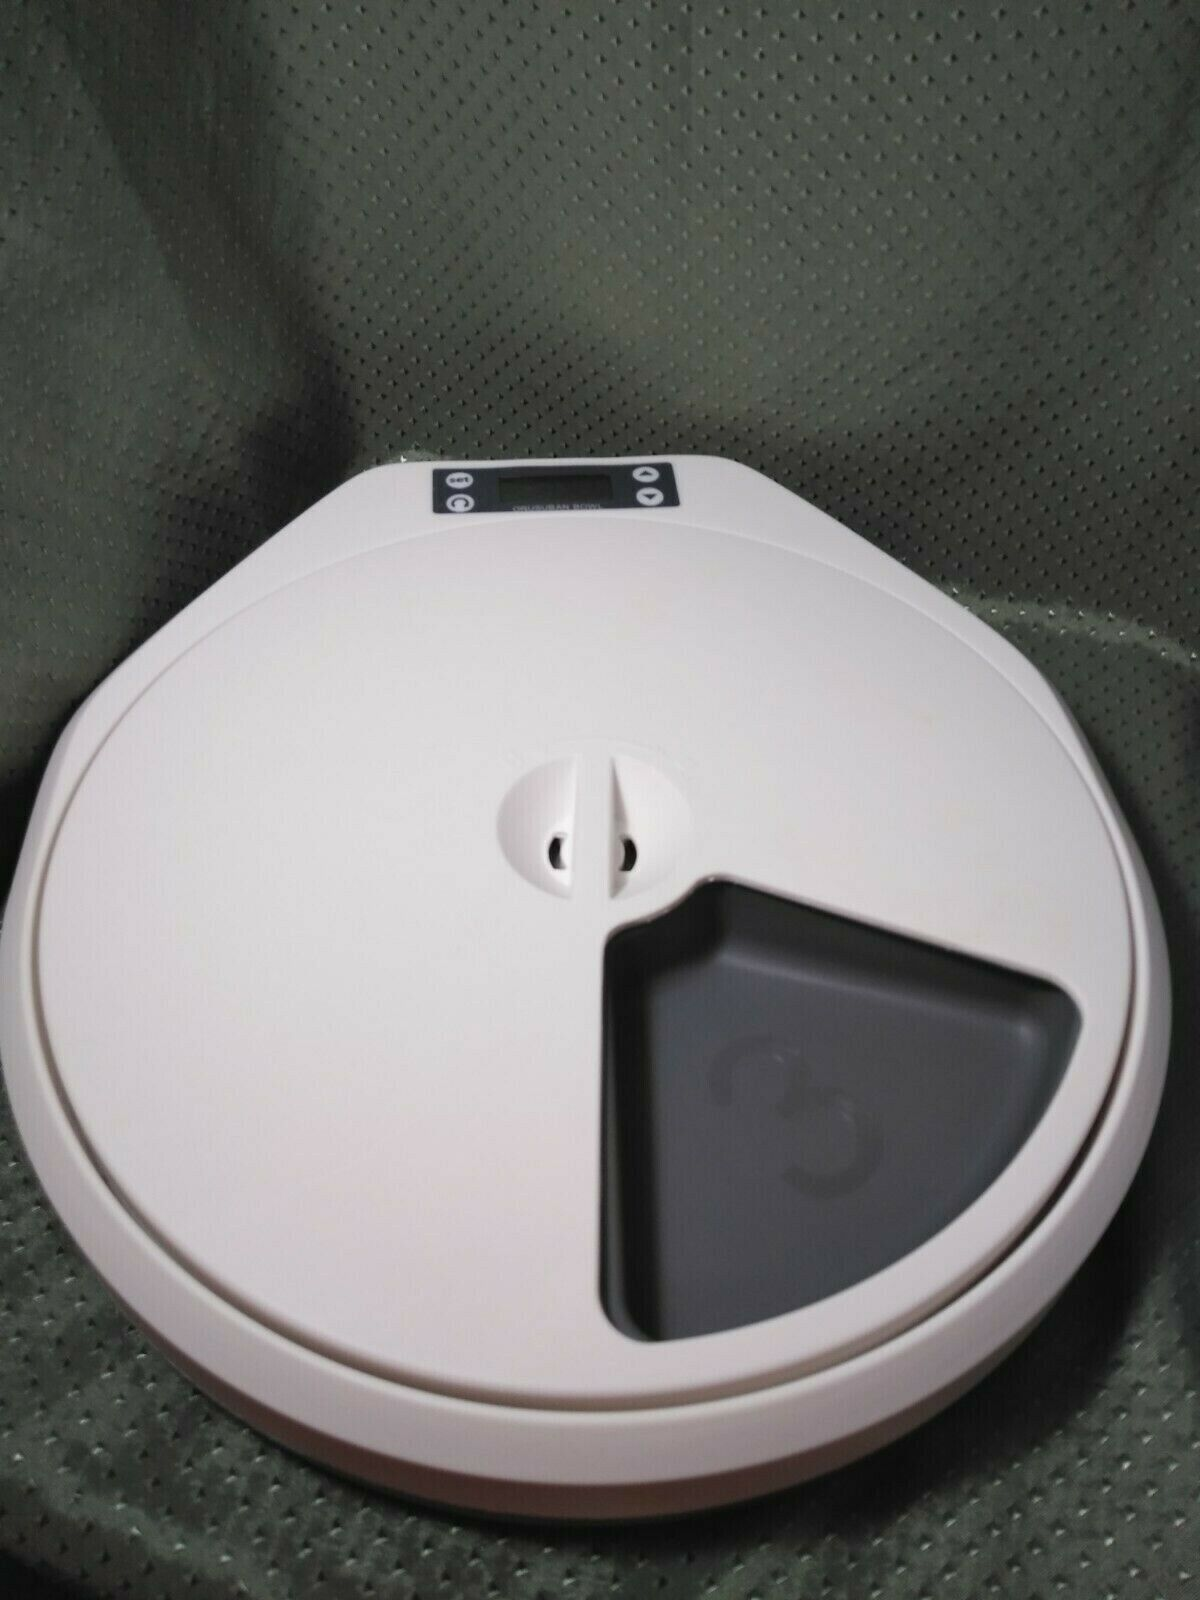 PAWISE 5-Meal Automatic Pet Feeder For Dogs And Cats W/Digital Timer - $18.99